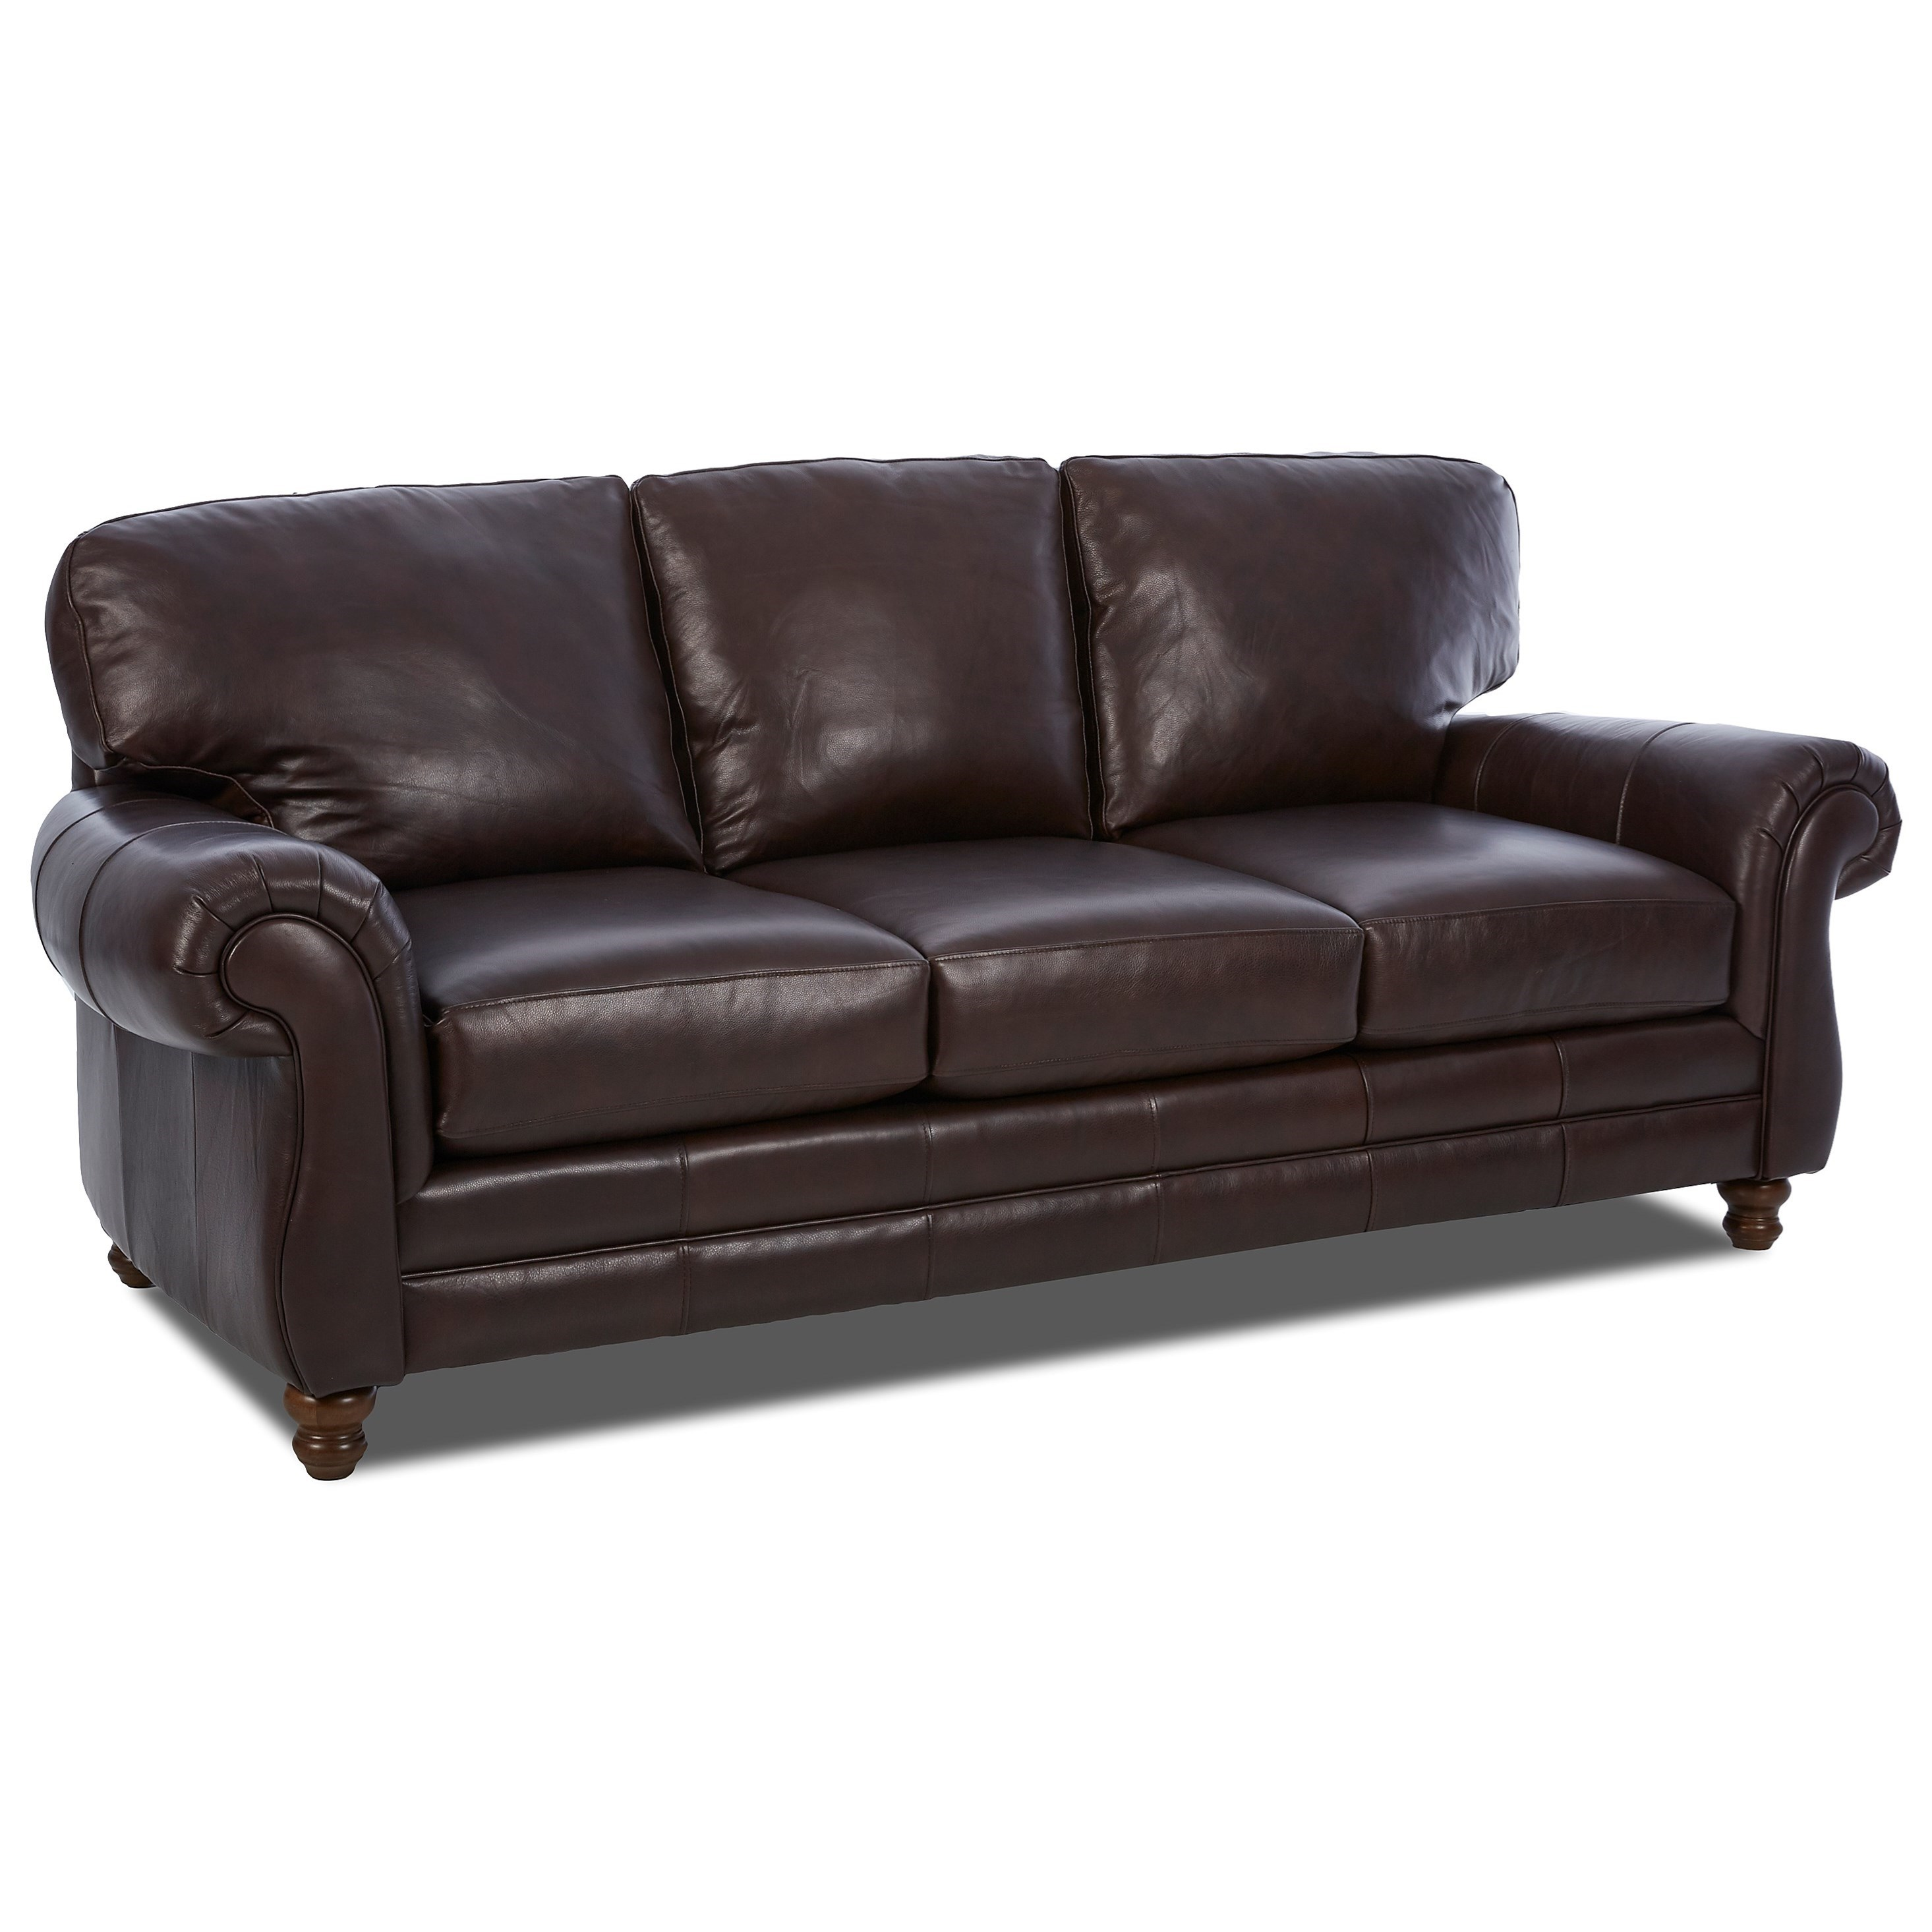 chelsea leather sofa curved sectional with chaise w rolled arms rotmans sofas